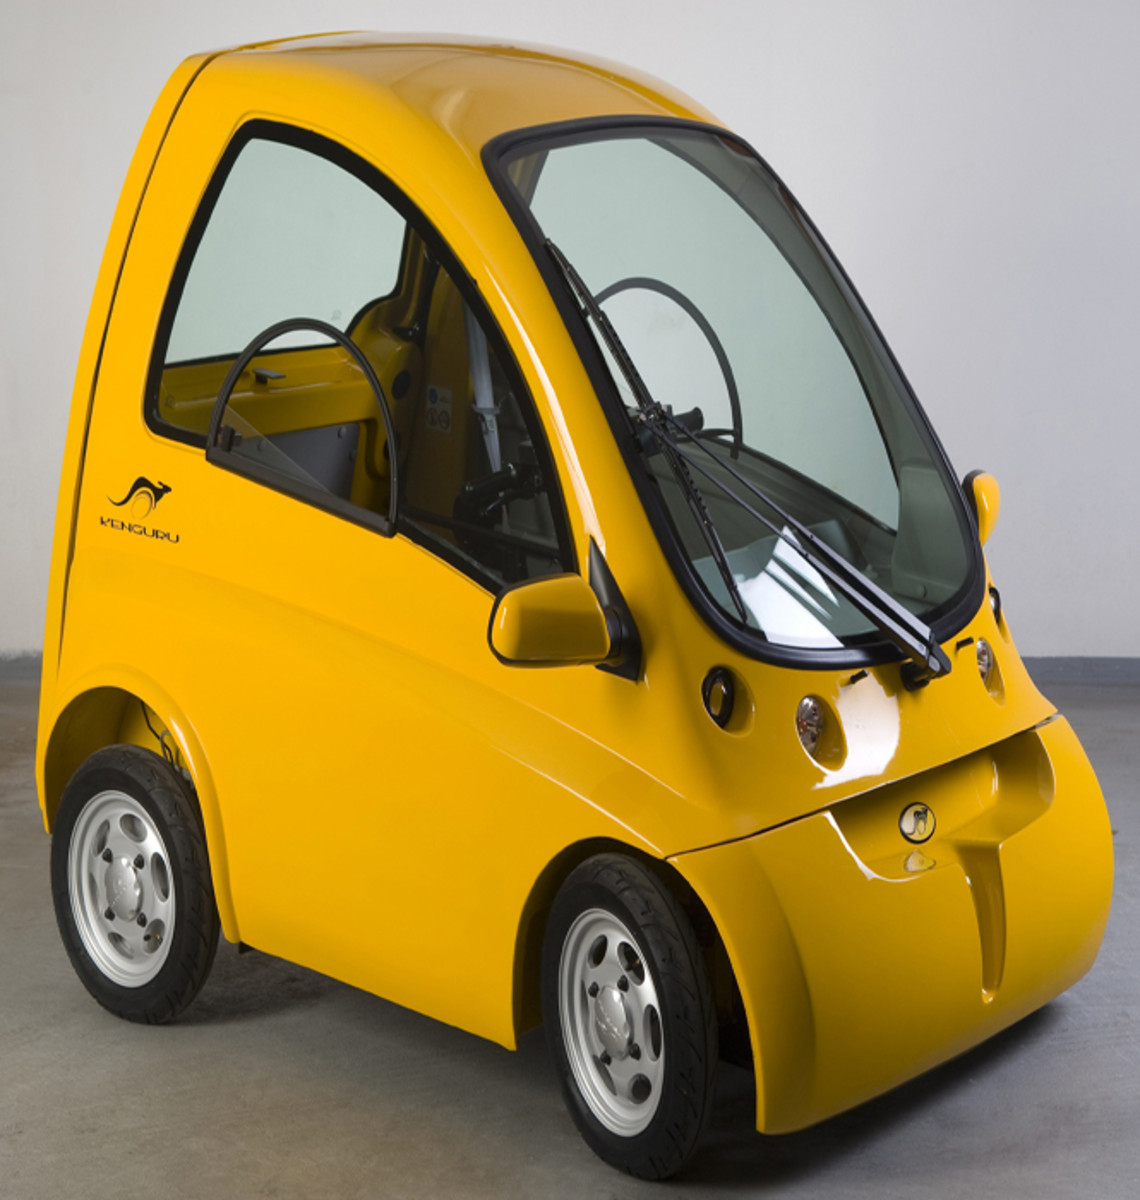 Is There an Affordable Electric Vehicle Option for Wheelchair Users